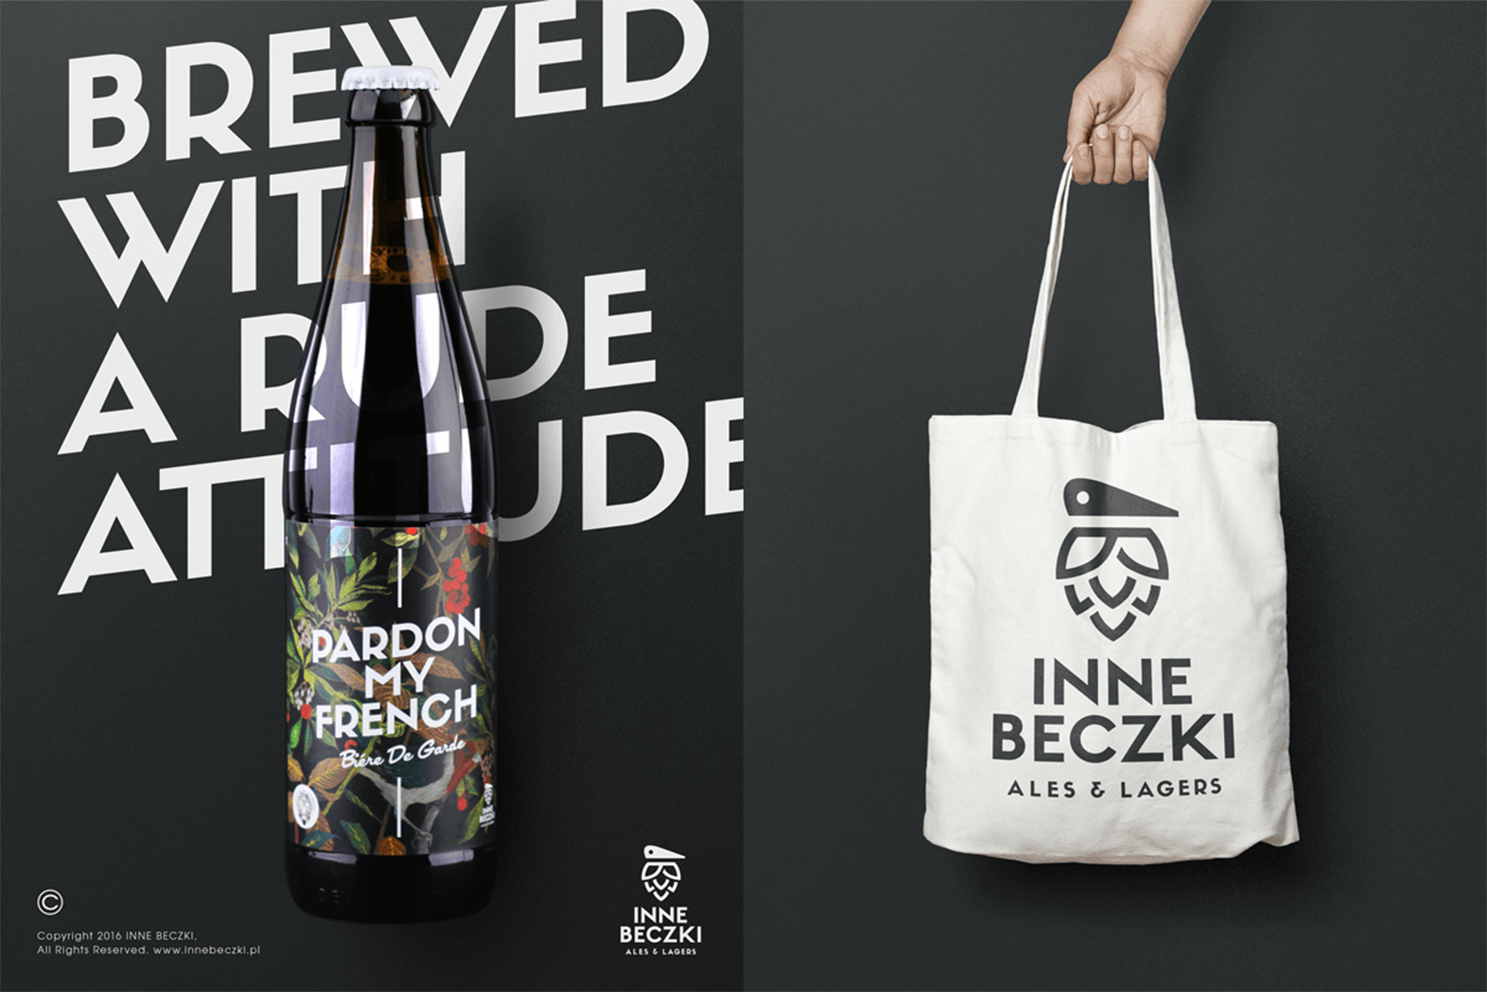 Redkroft. – brand design studio Inne Beczki – a logo design project that grew into a brewery.